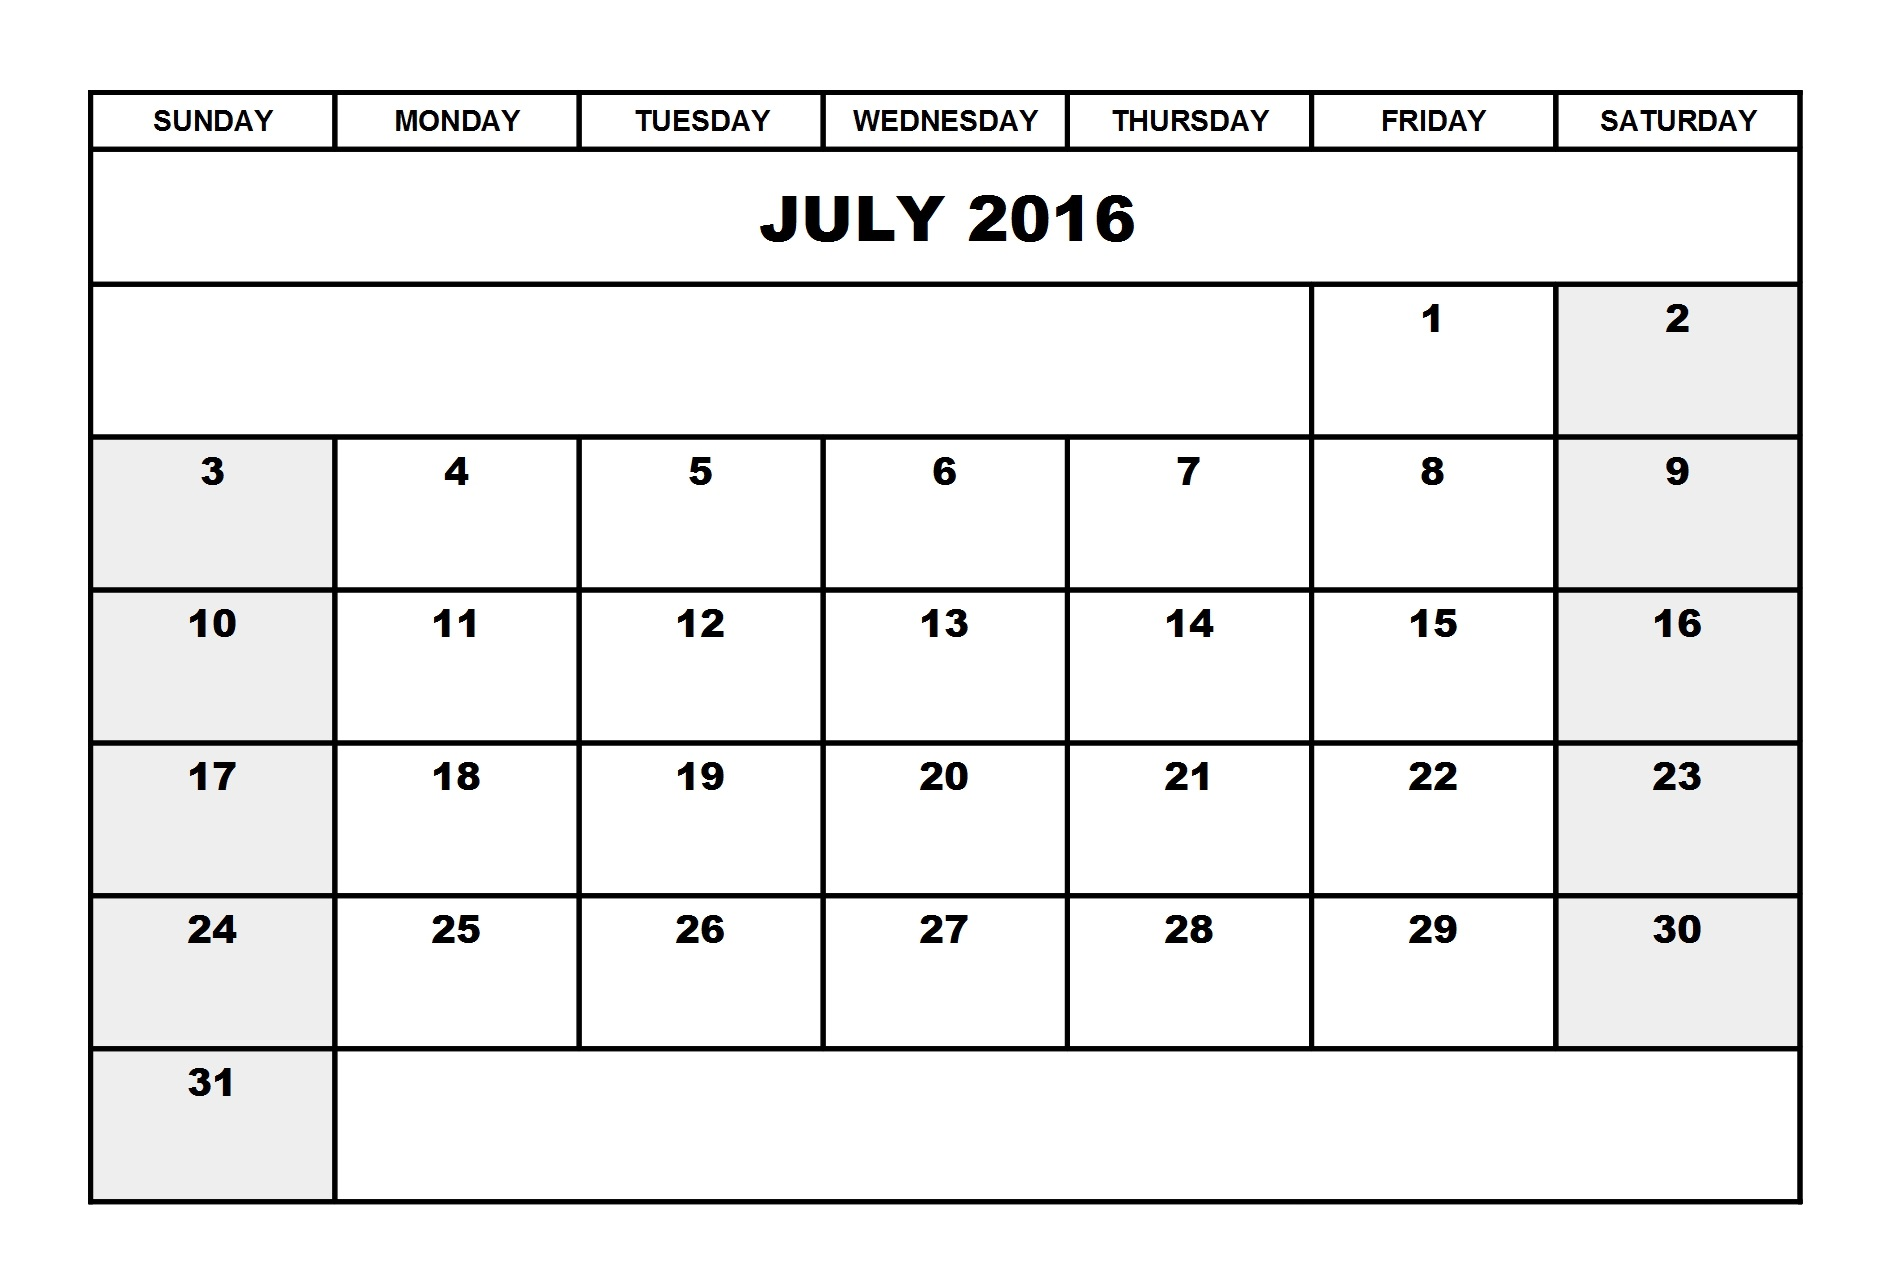 ... July 2016 Calendar Templates, July 2016 Editable Weekly Templates